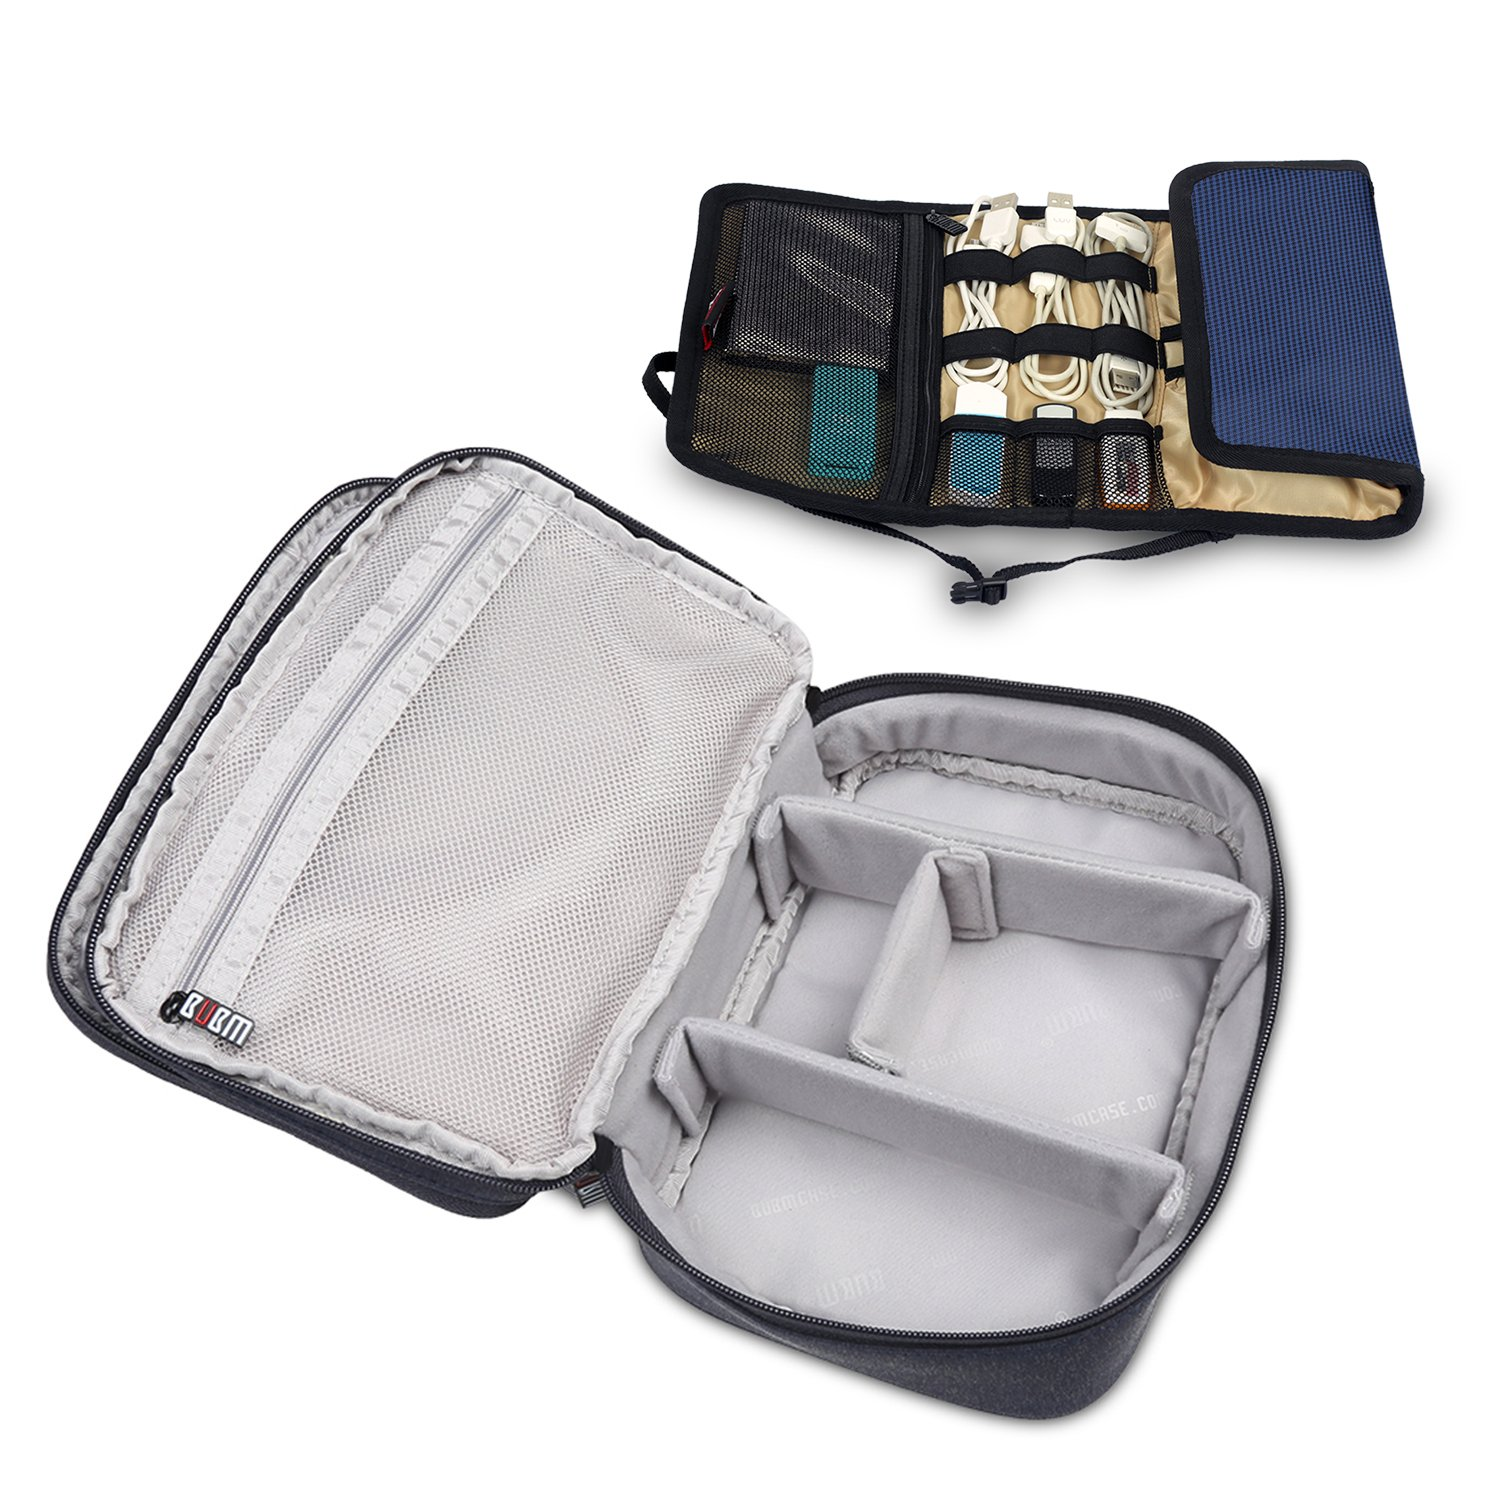 Digital Storage Bags For Home Travel Organizer Bag For Electronics Accessories (2P Grey)